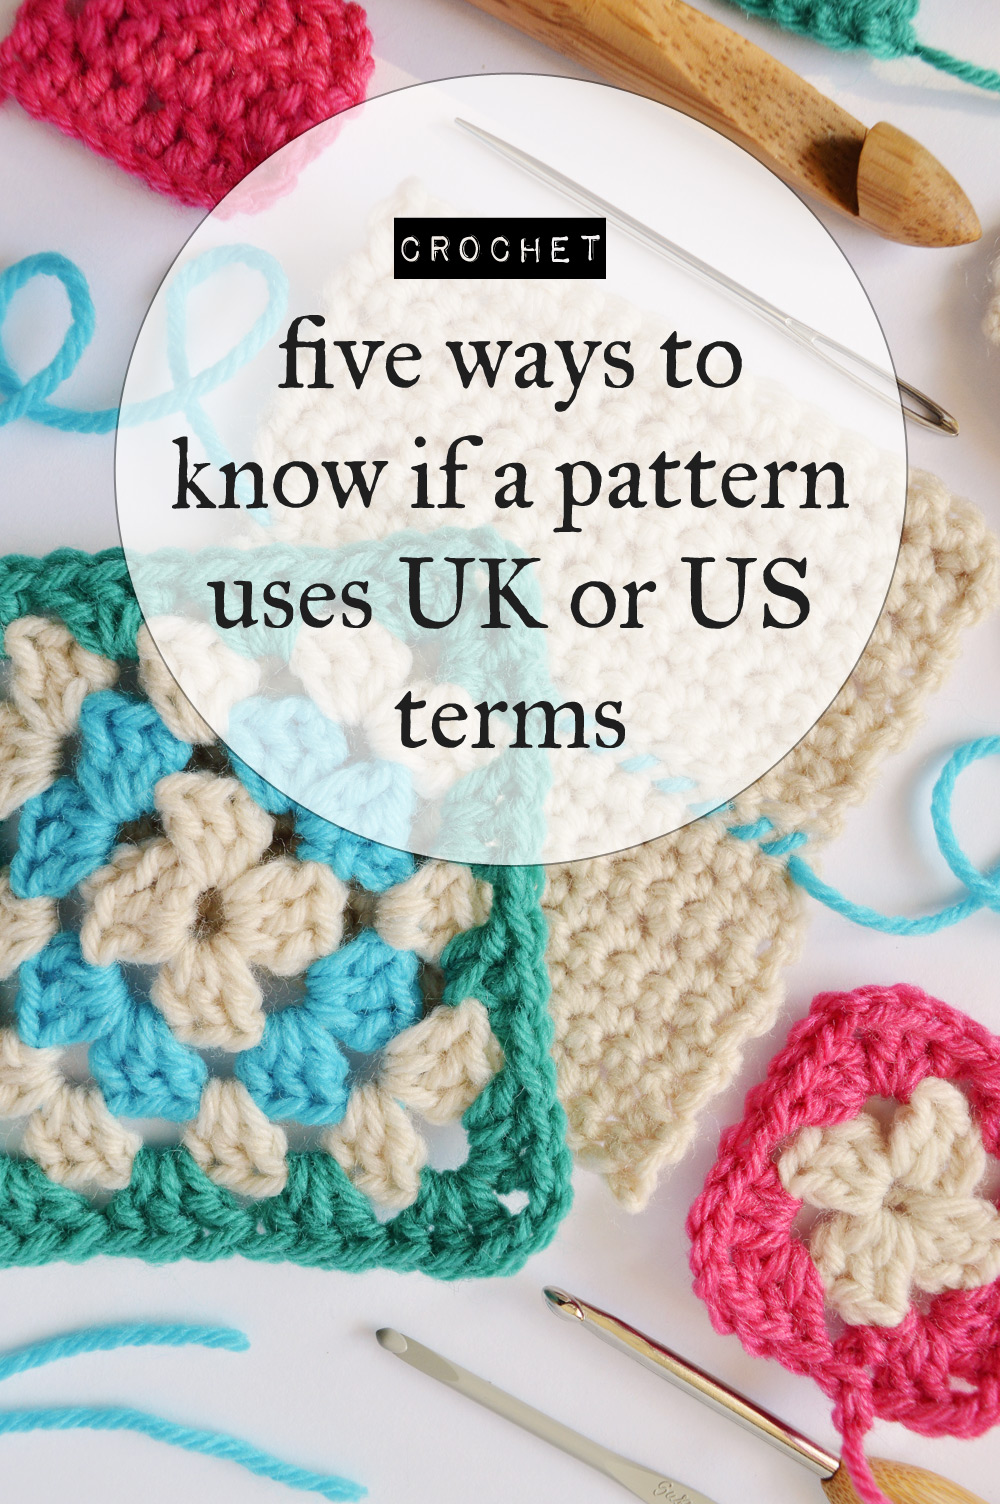 Crochet Terms : How to know if a crochet pattern uses UK or US terms @craftingfingers